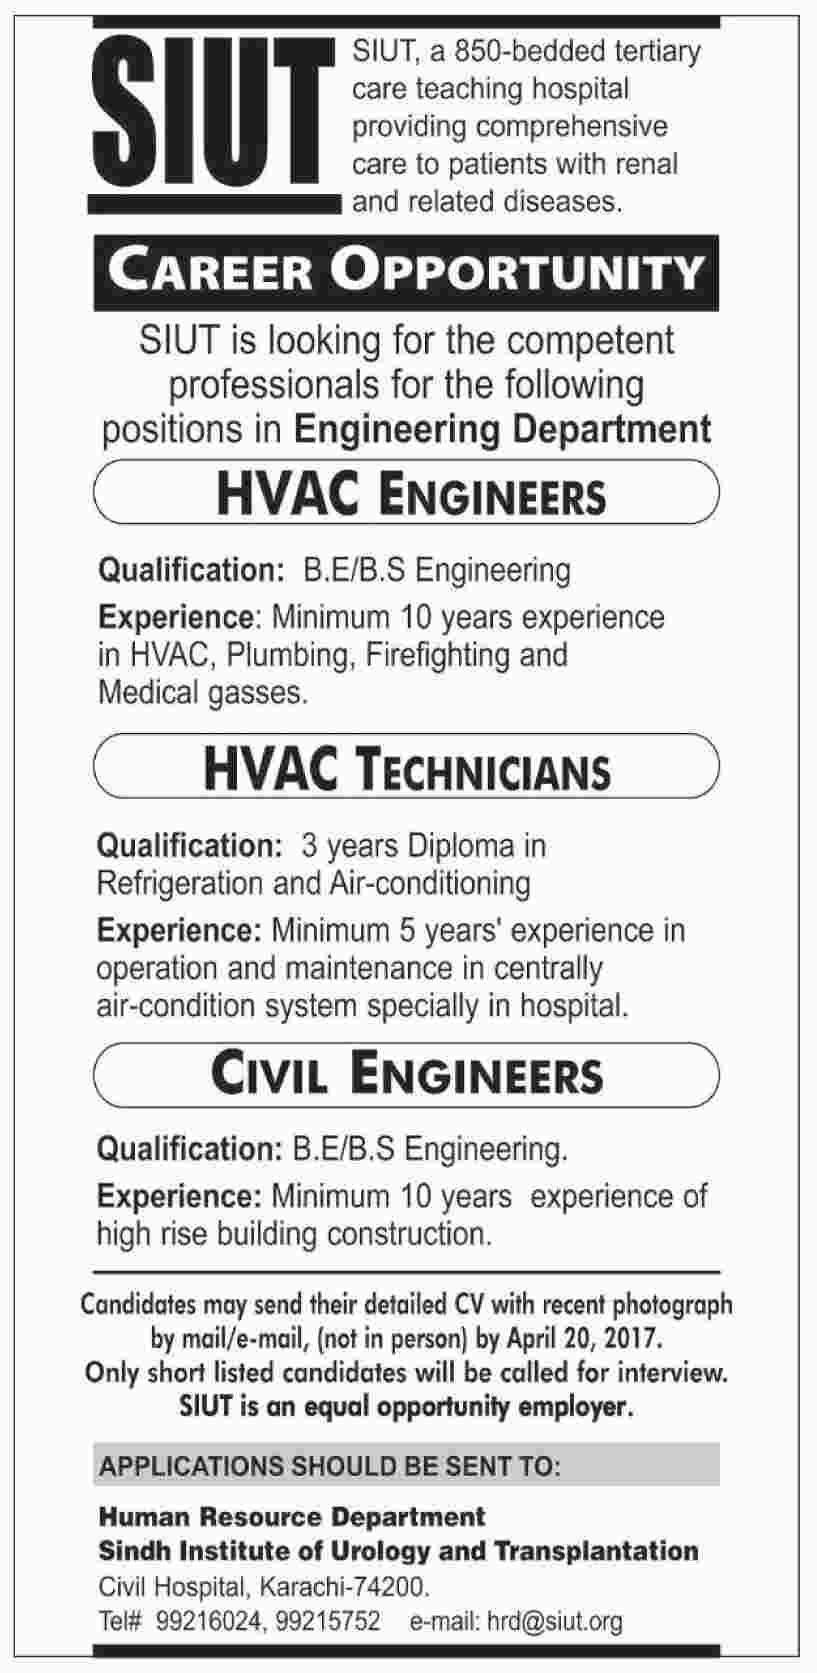 SIUT Hospital Jobs 2017 Available for Engineering